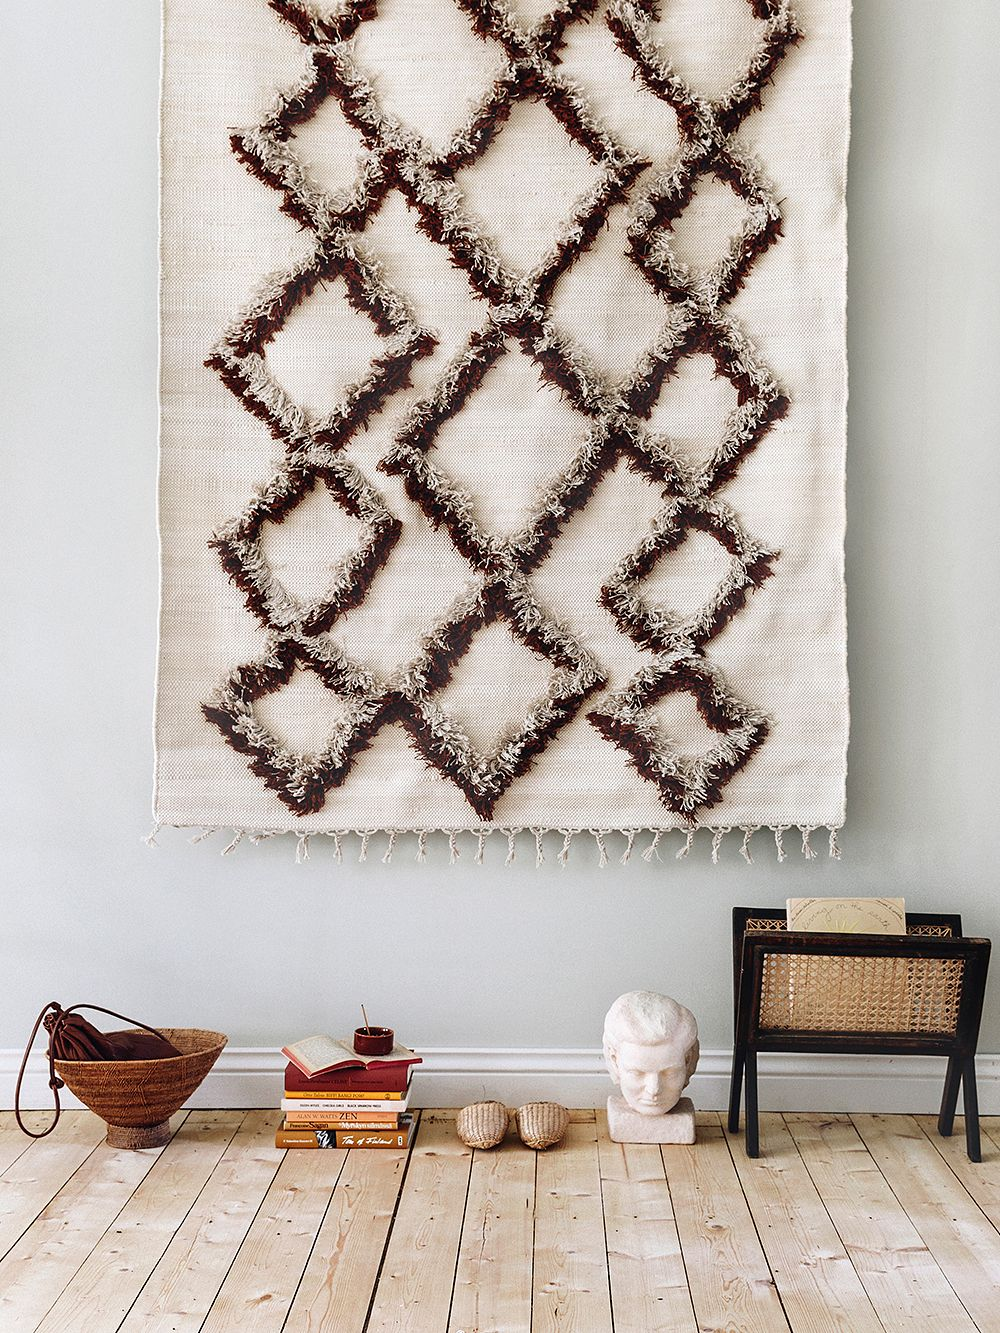 Finarte's Tie rug in brown, hung on the wall.